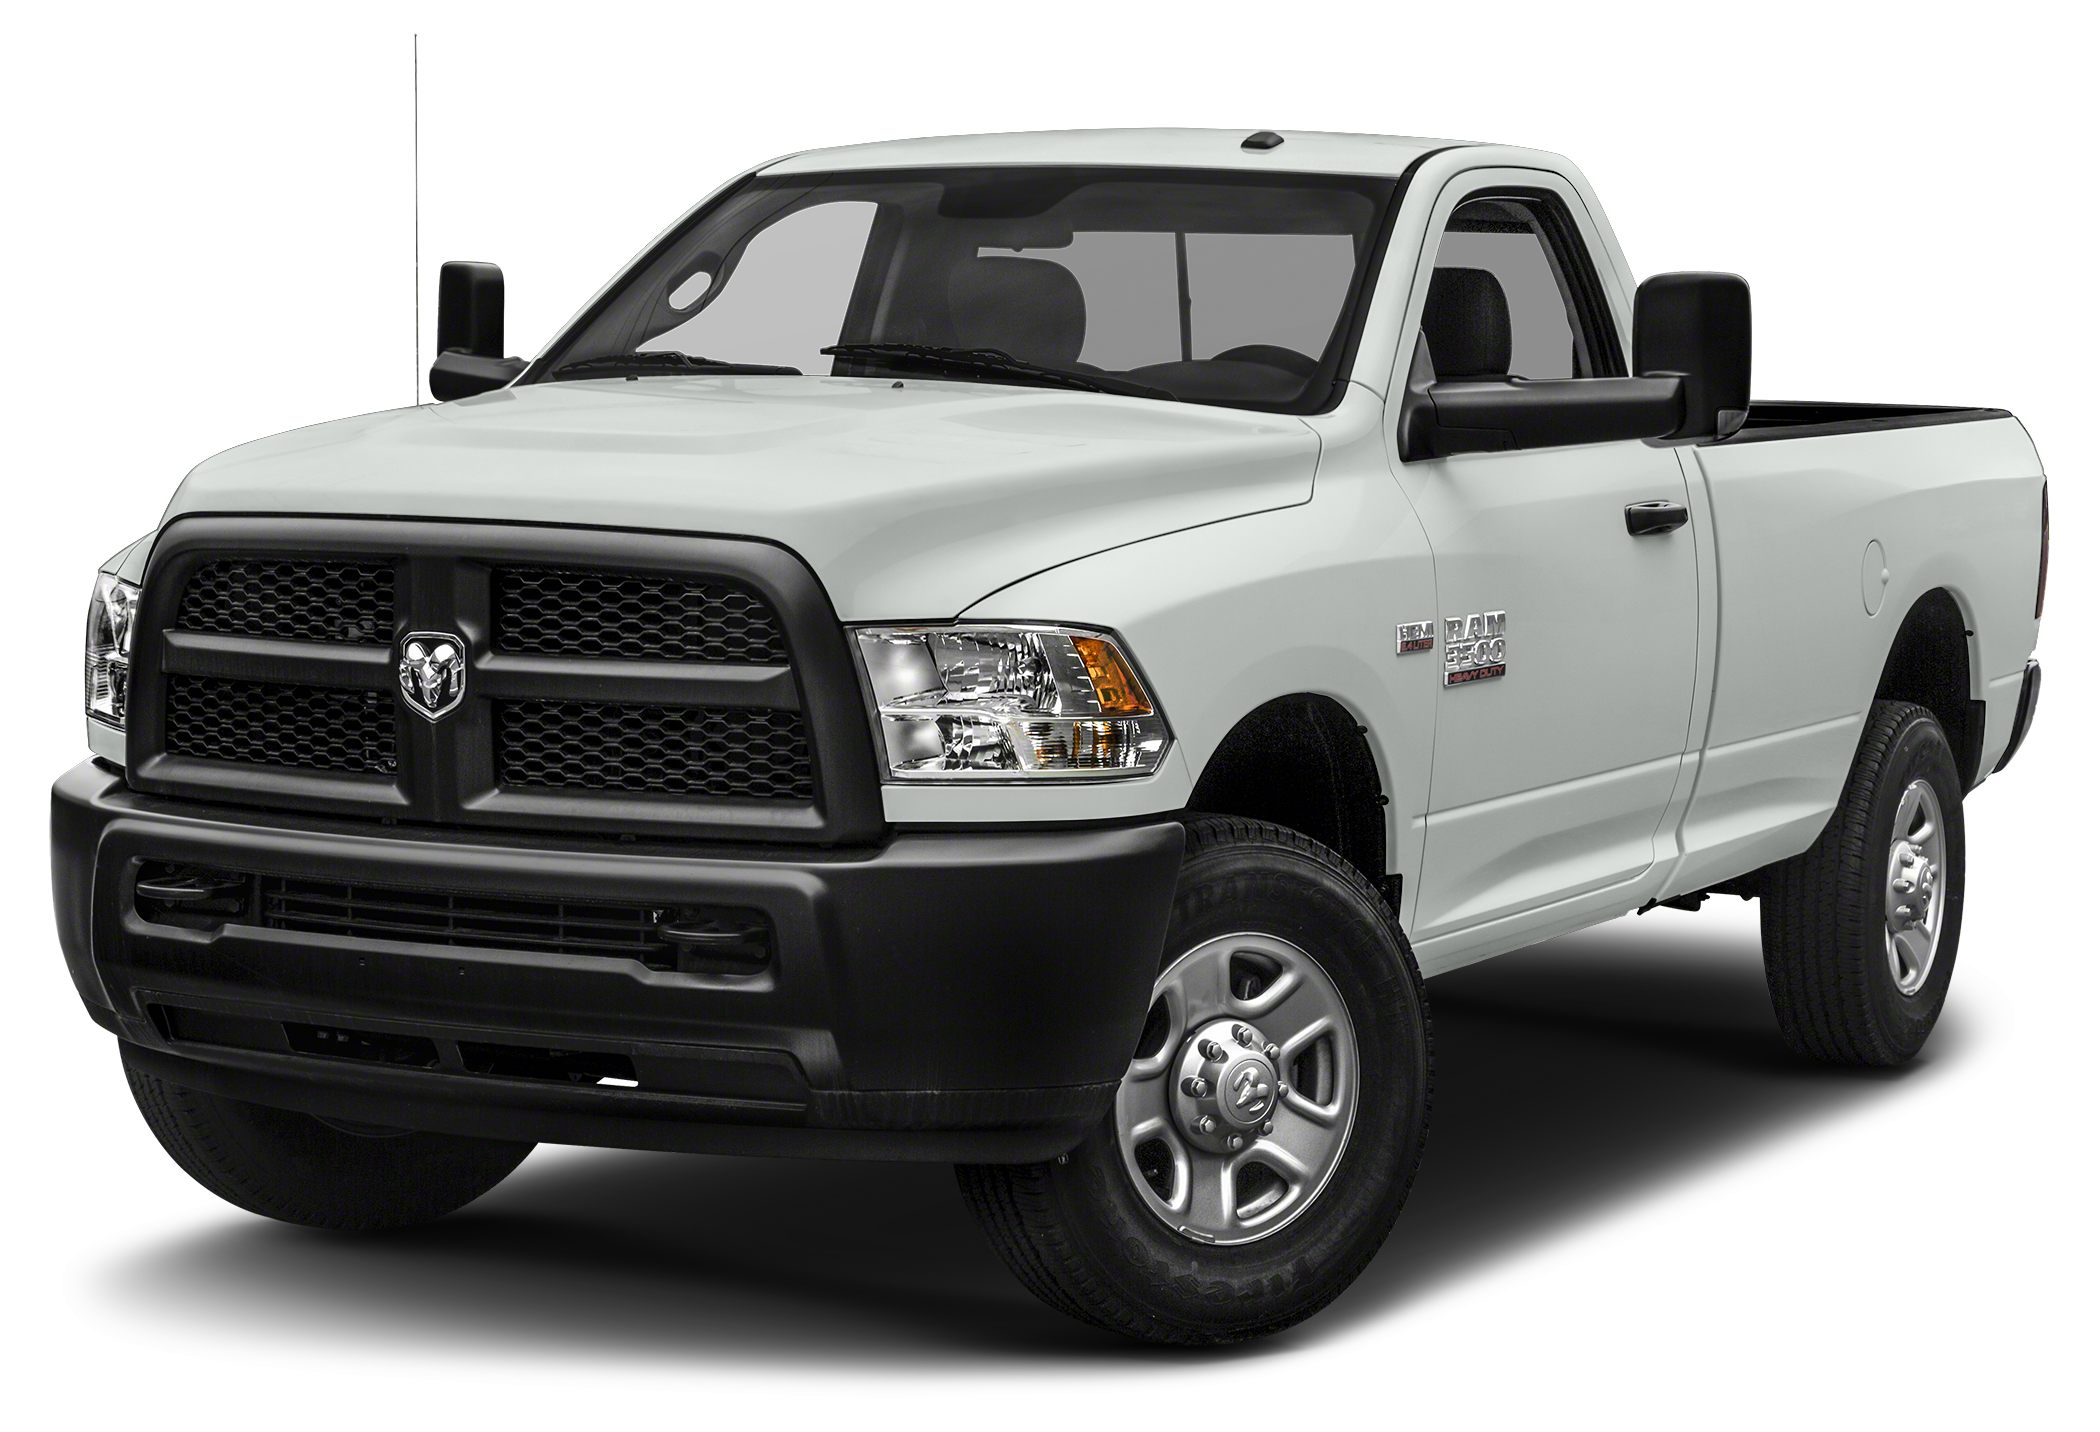 2018 RAM 3500 Tradesman Bright White Clearcoat 2018 Ram 3500 Tradesman 4WD 6-Speed Automatic Cummi